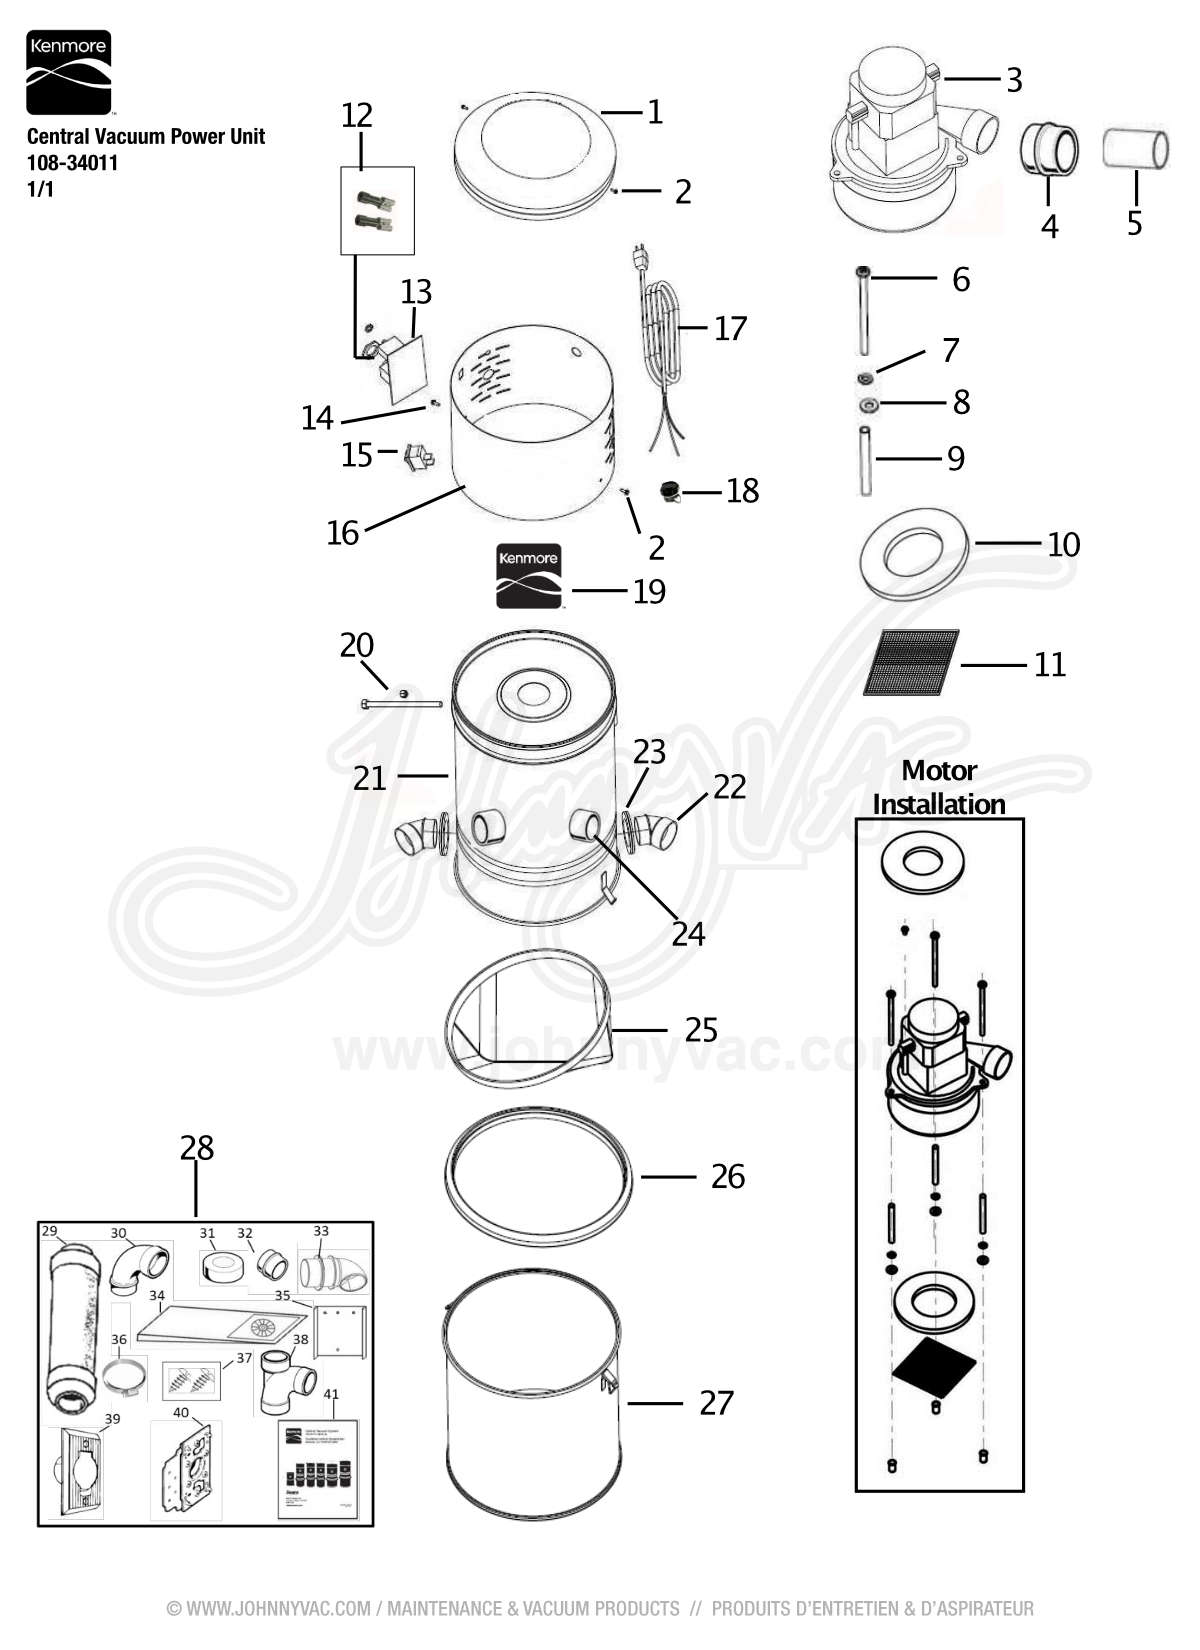 hight resolution of vacuum schematic exploded view for kenmore central vacuum power unit 108 34011